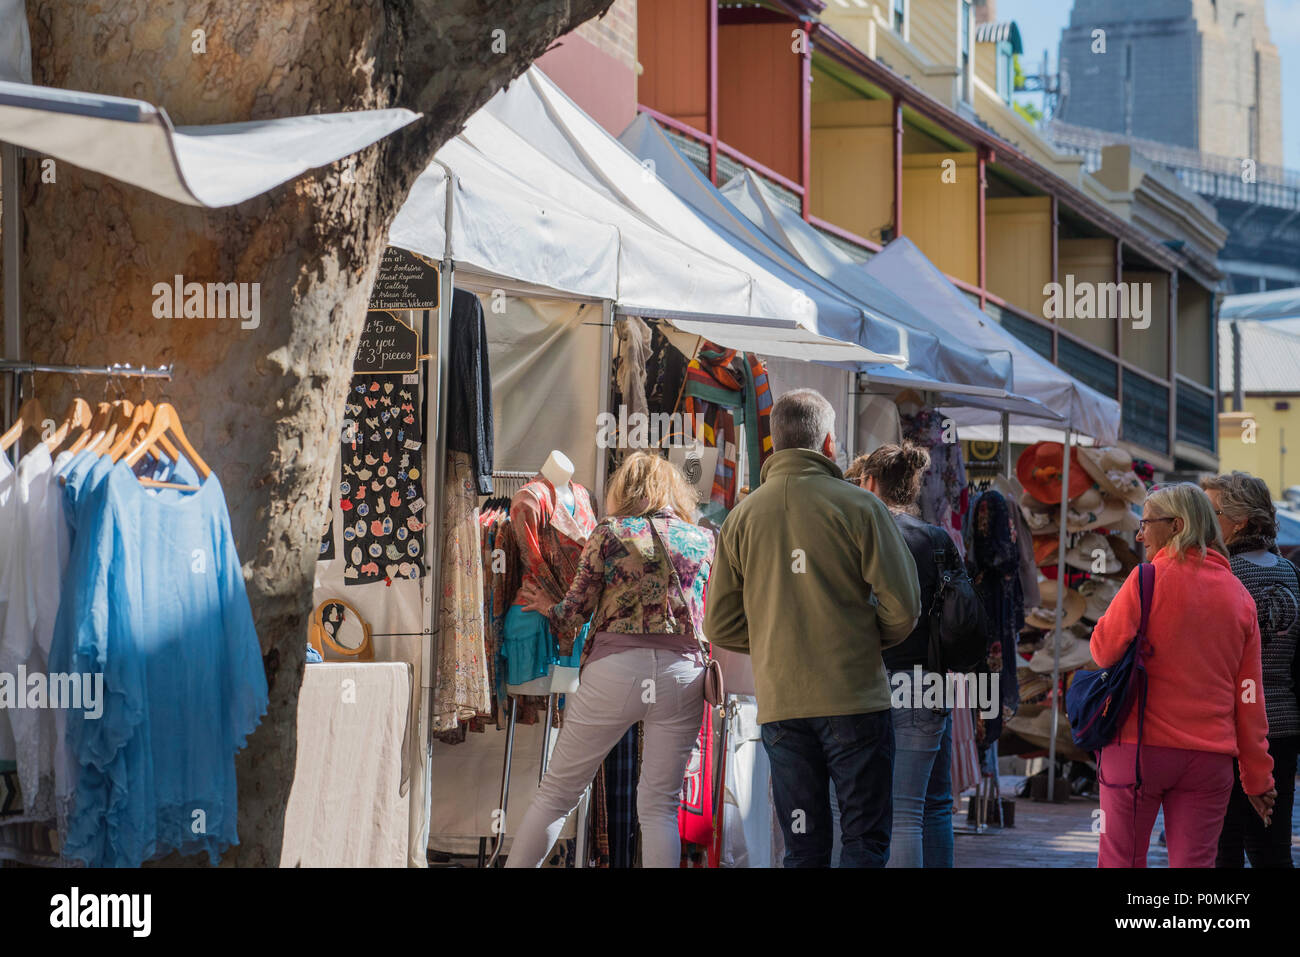 Market stalls selling fashion and art, part of a large weekend market in Sydney's historic Rocks Precinct in New South Wales, Australia - Stock Image